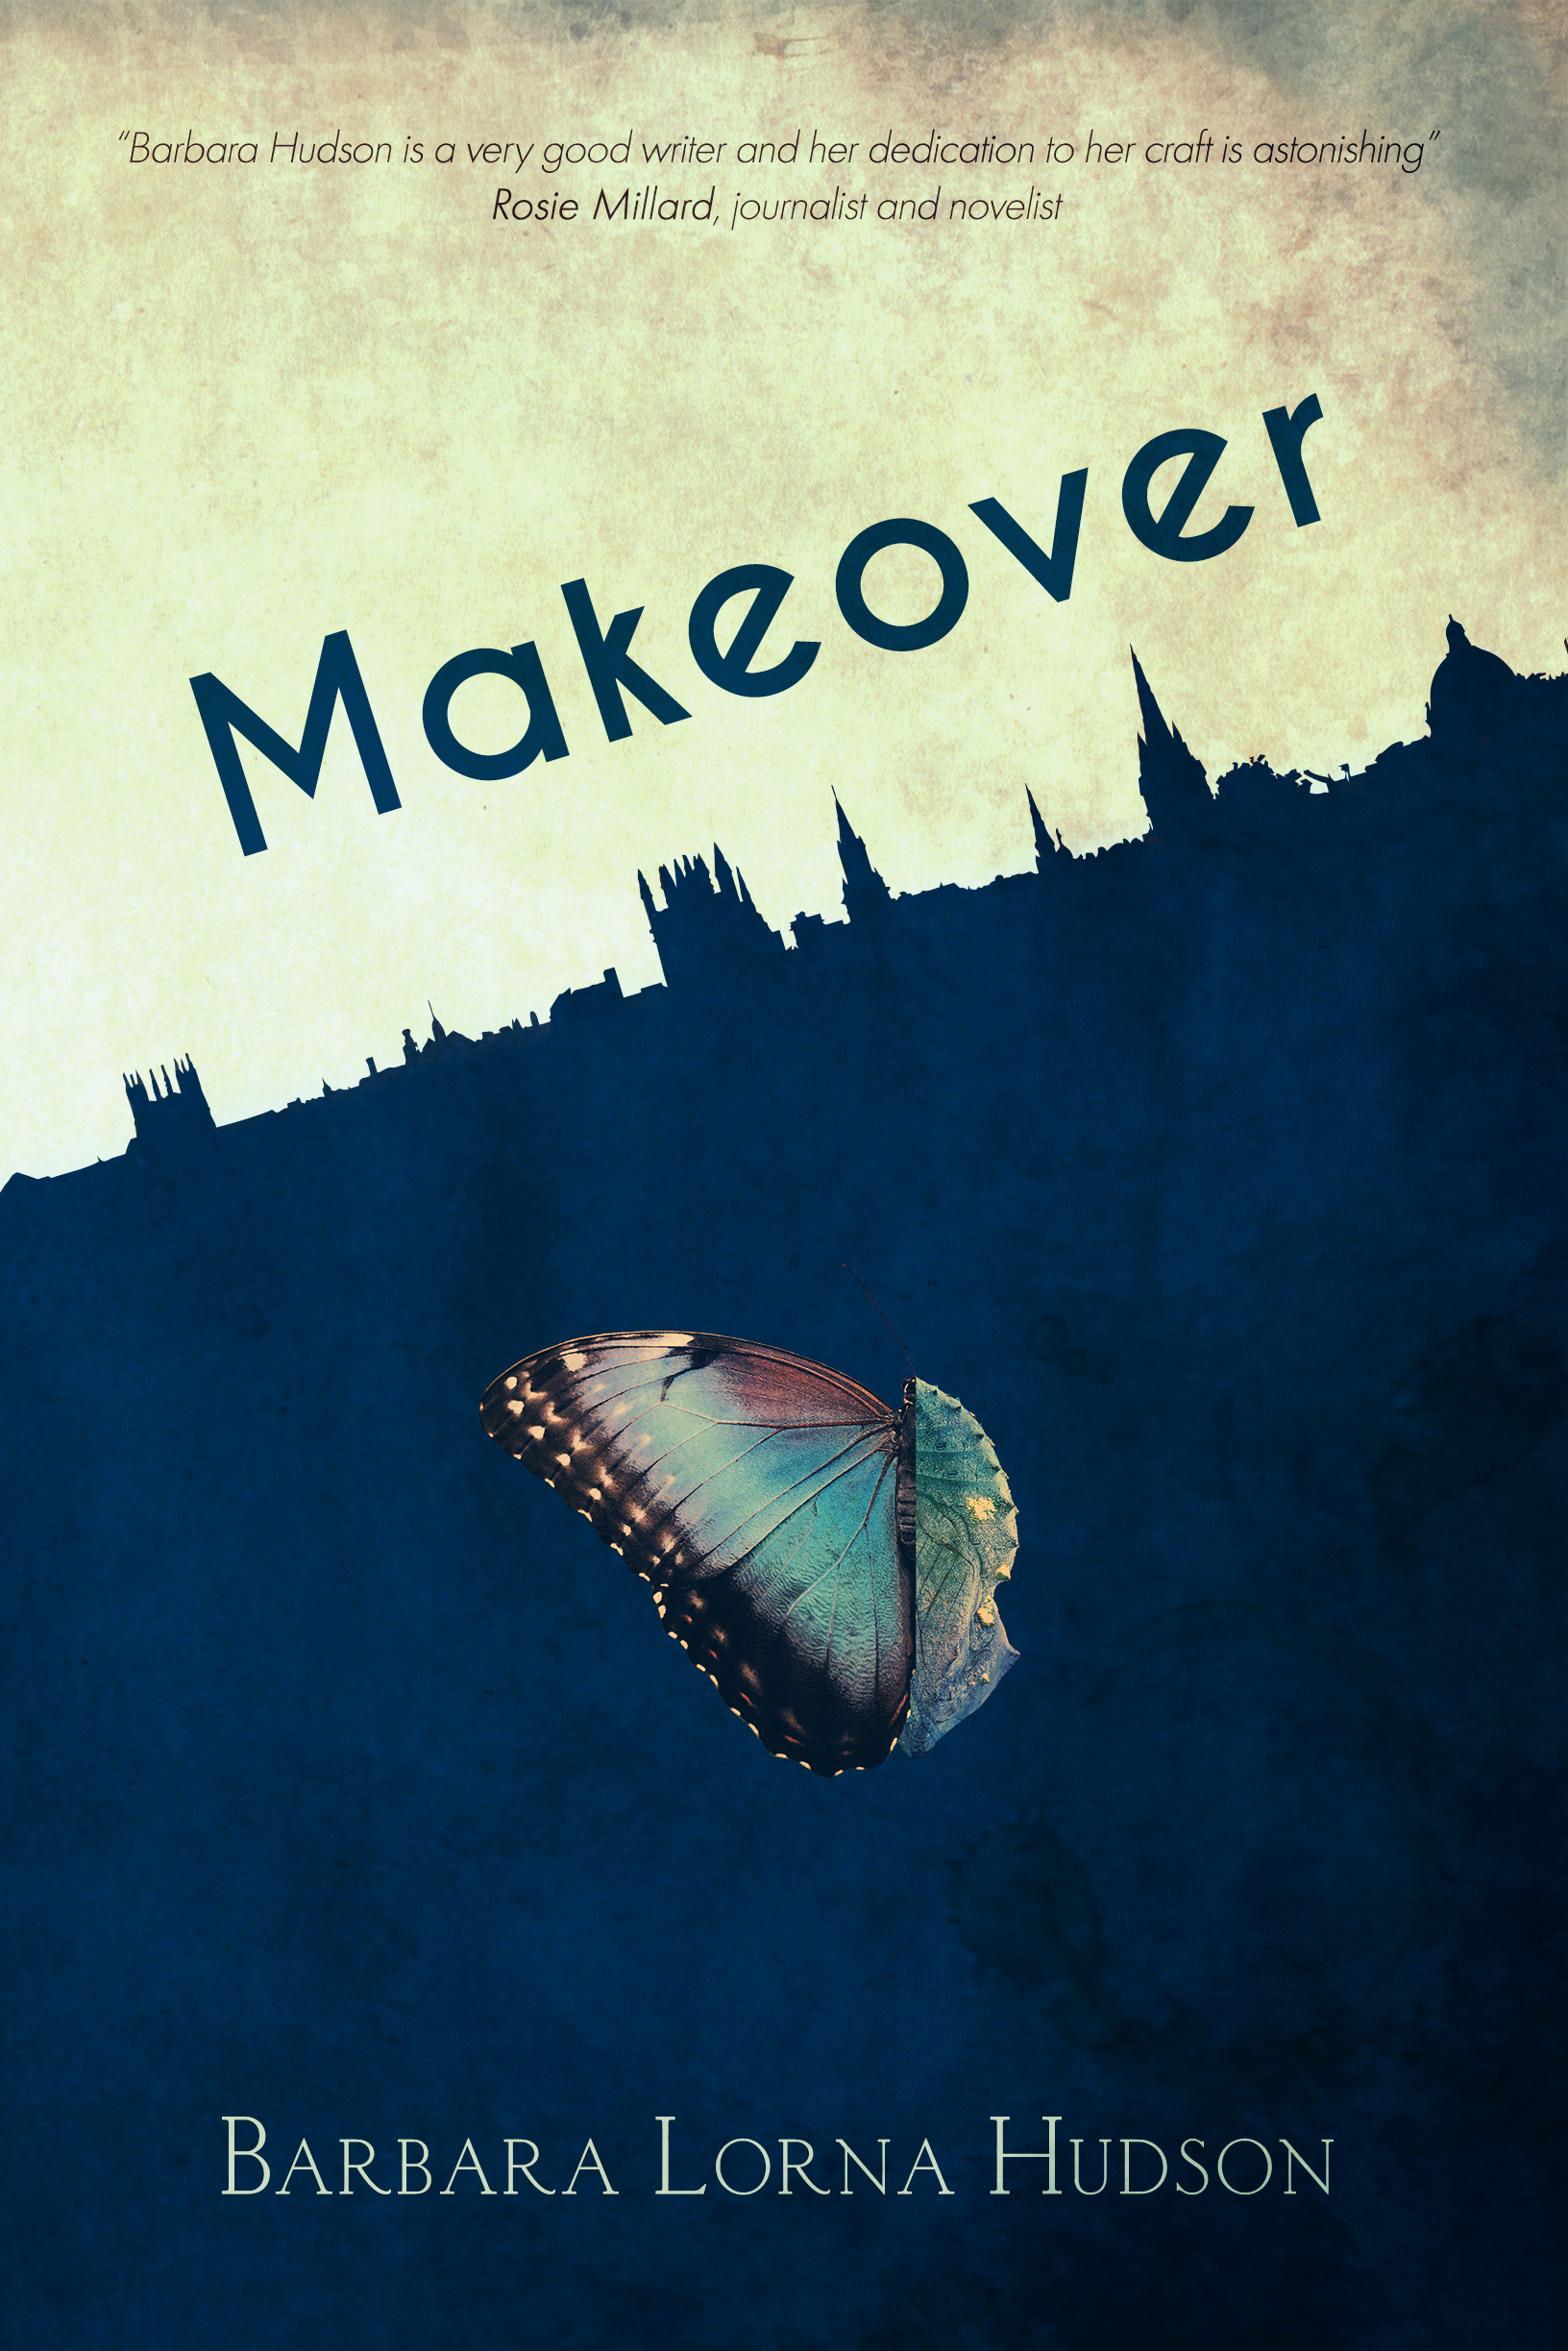 Emeritus Fellow Barbara Lorna Hudson releases new book, Makeover